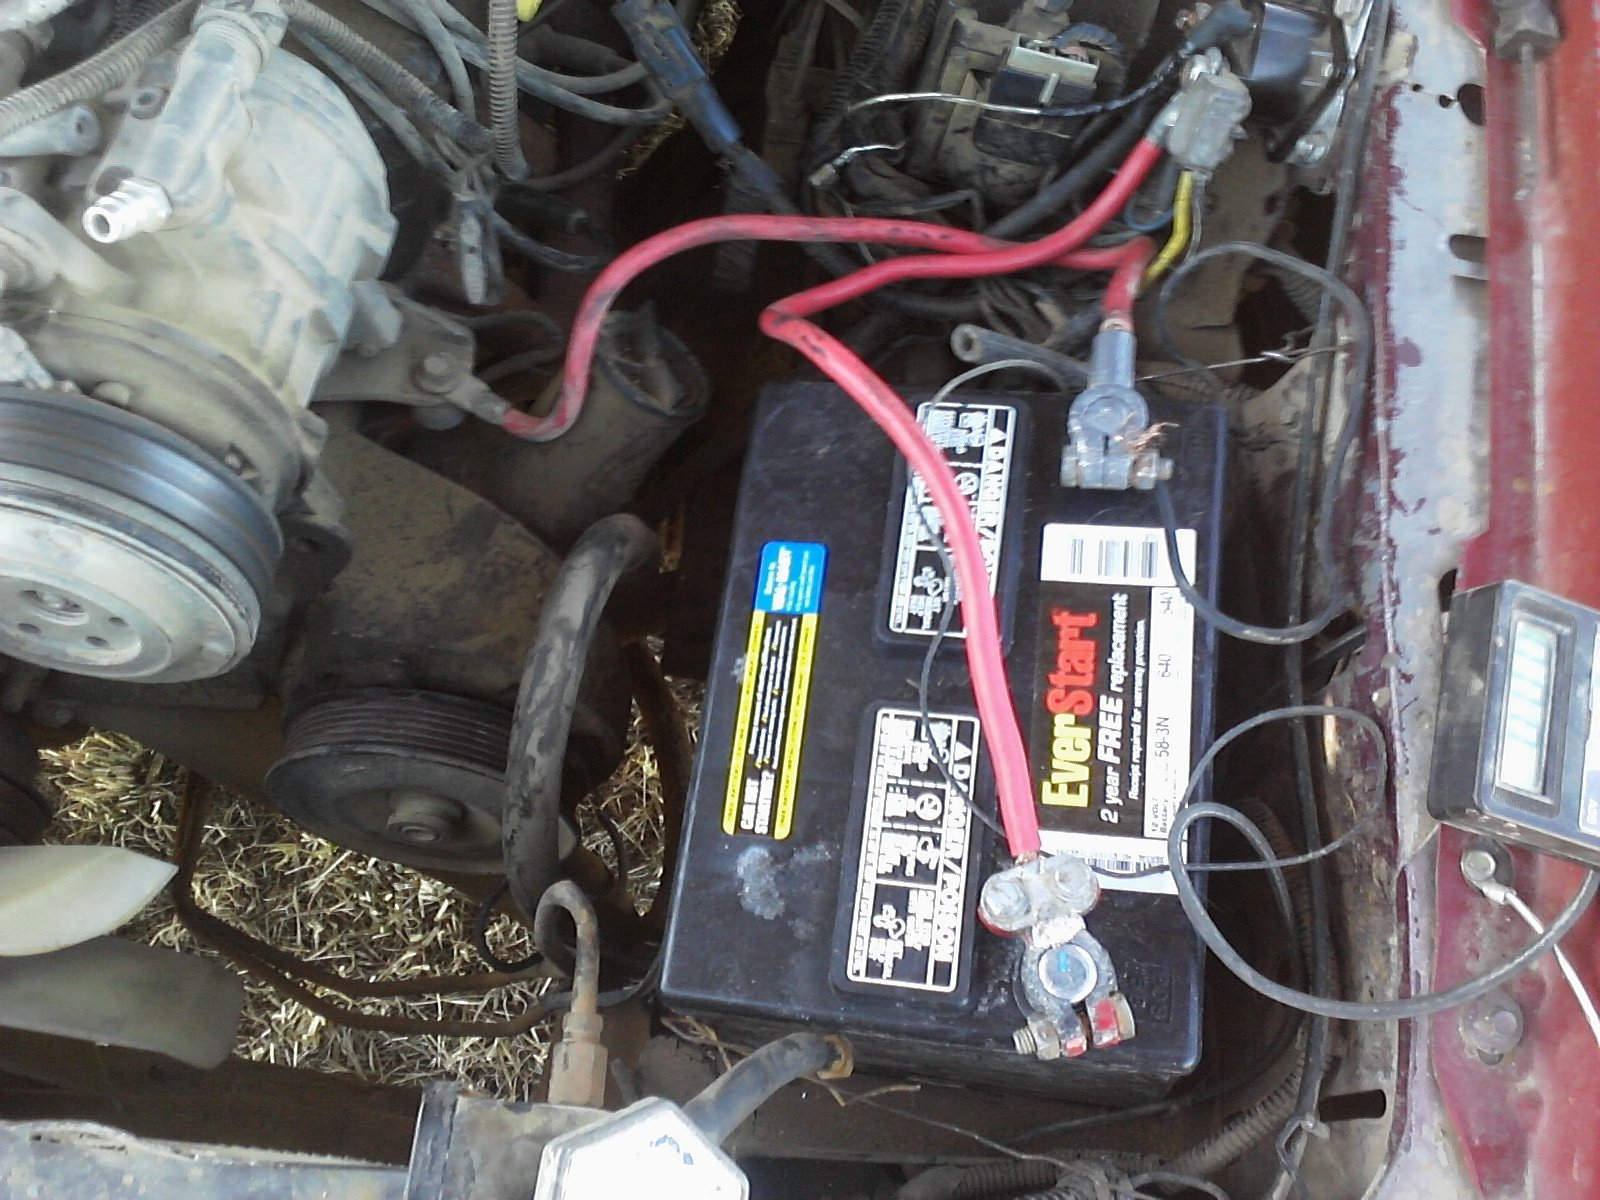 1990 Mustang GT Starter solenoid issues. Please help me with my only working car!-0103011456b.jpg